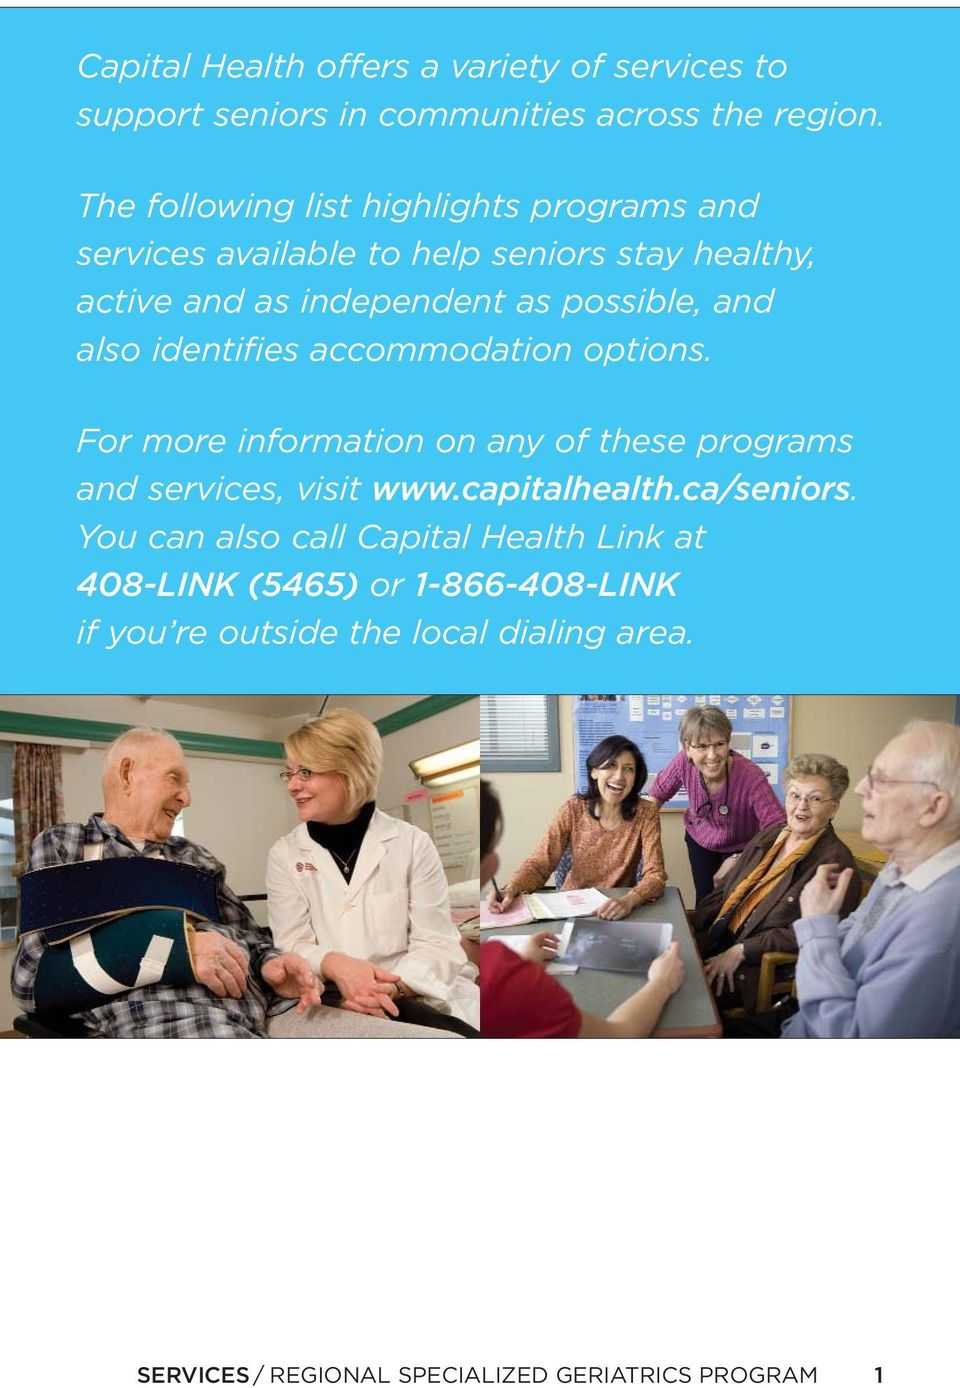 and also identifies accommodation options. For more information on any of these programs and services, visit www.capitalhealth.